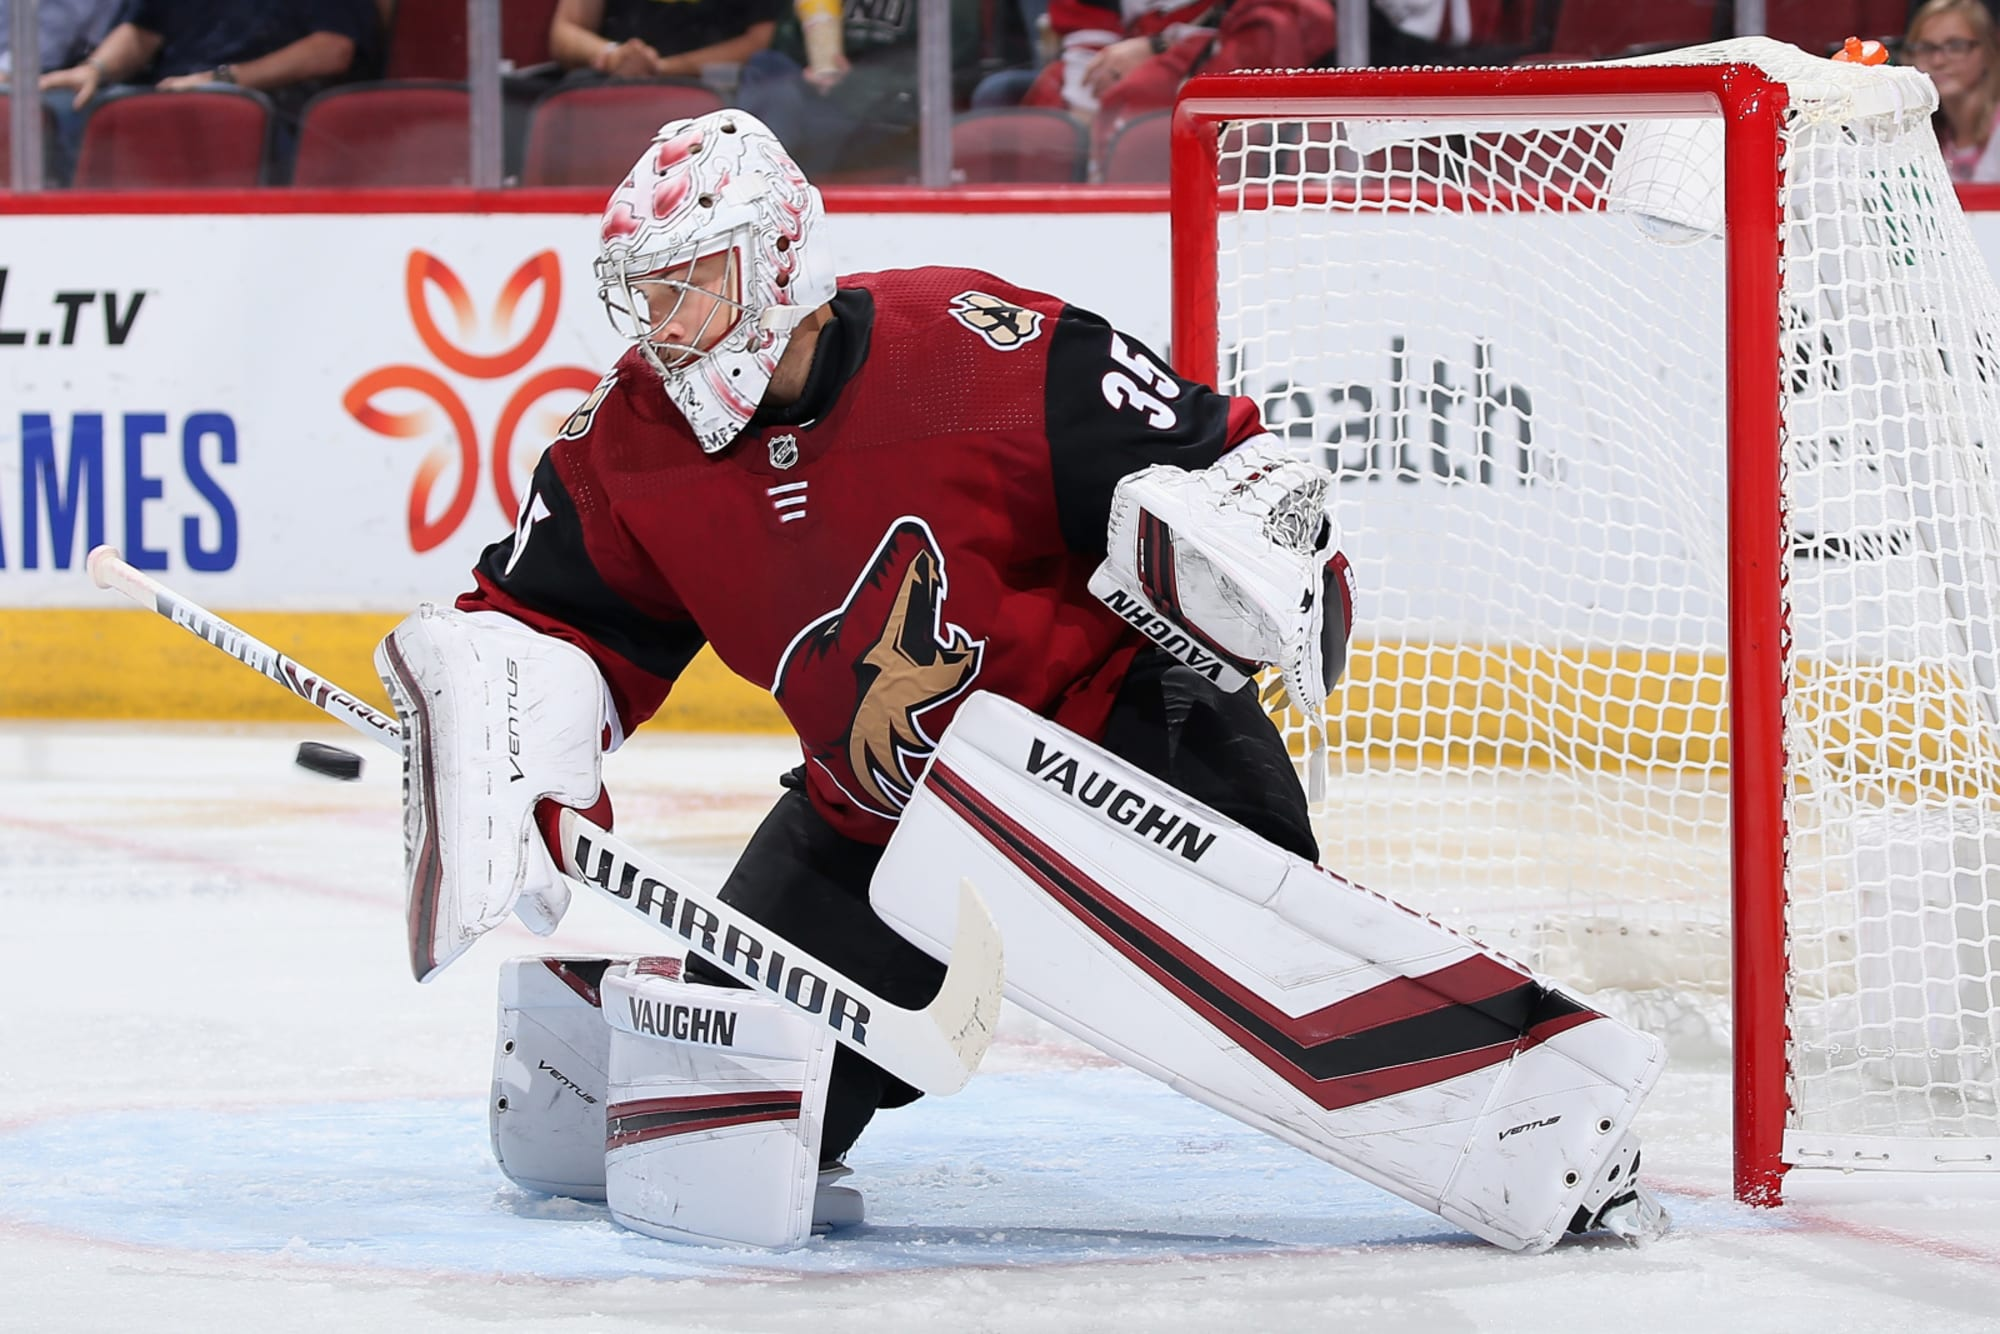 Will Darcy Kuemper be able to hold his own on the Avalanche?